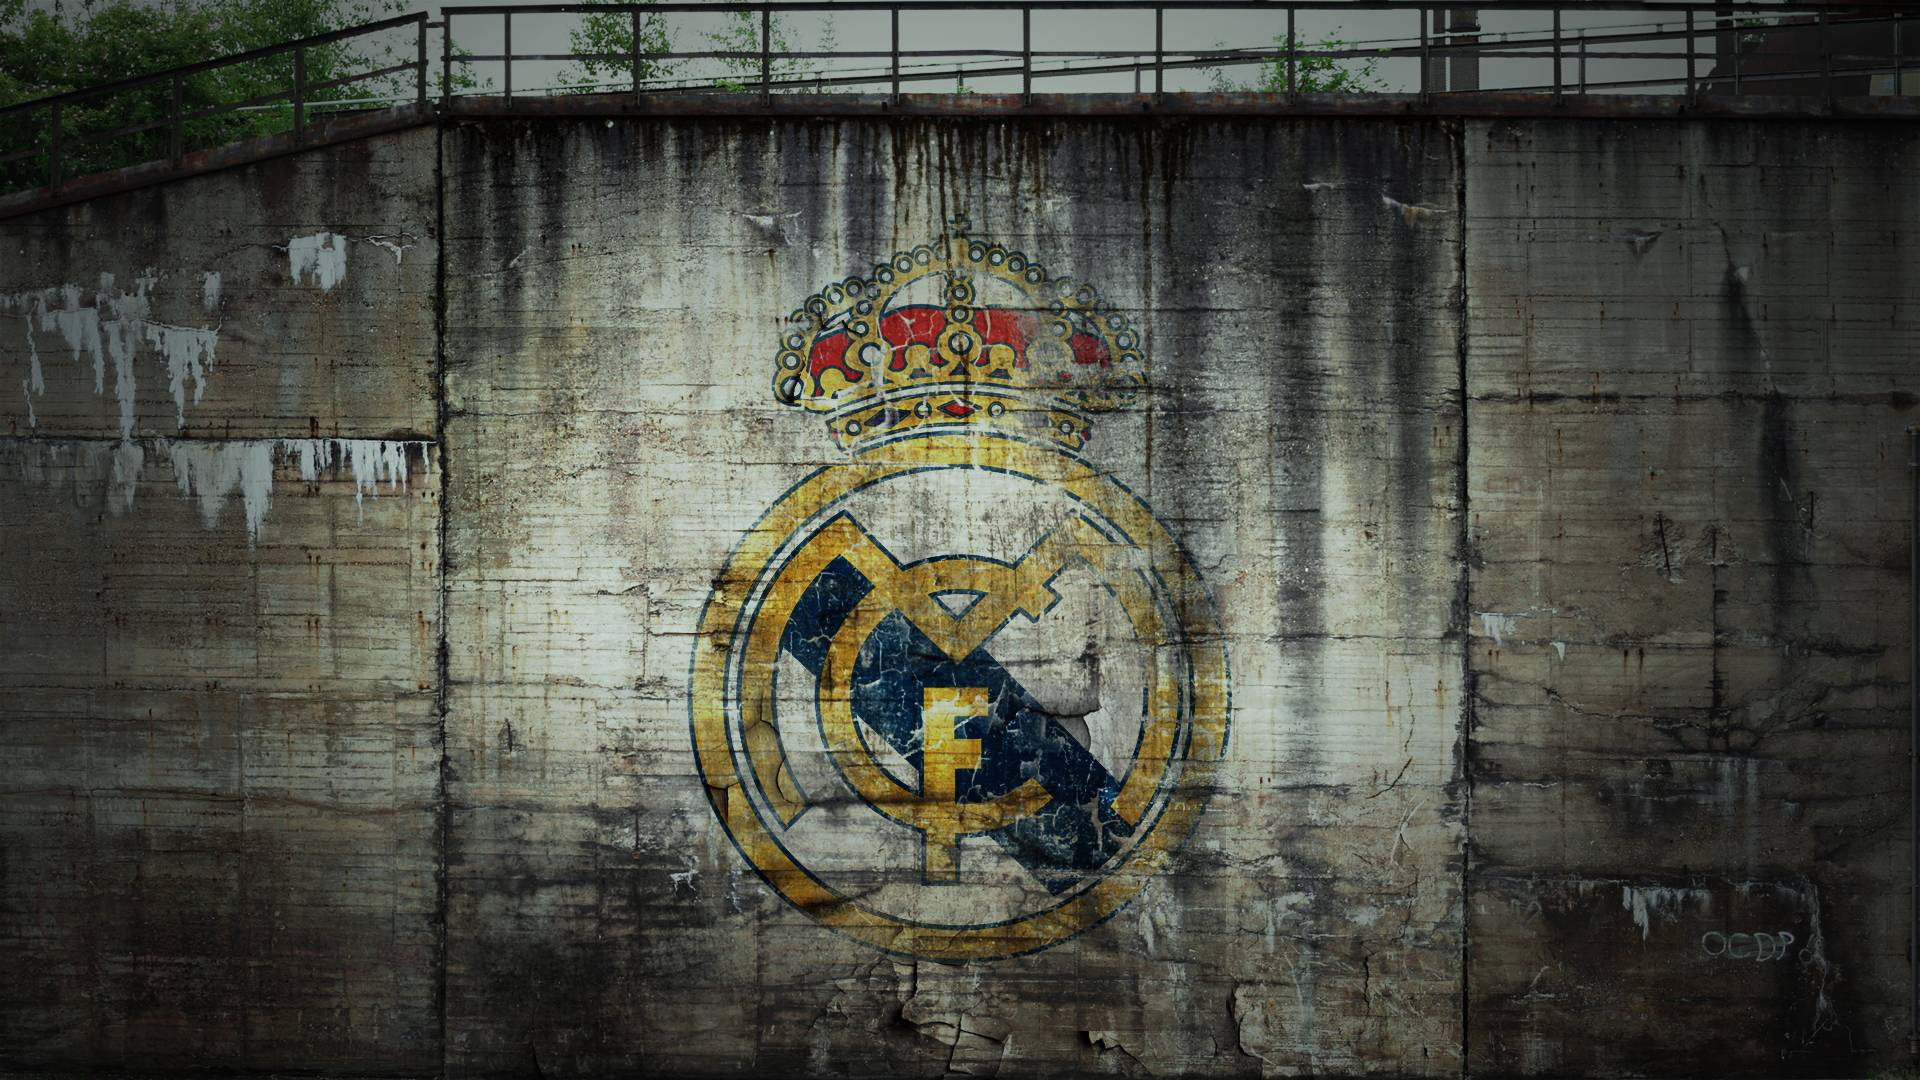 Wallpaper real madrid for windows xp - Real Madrid Wallpaper High Definition Wallpapers High Definition